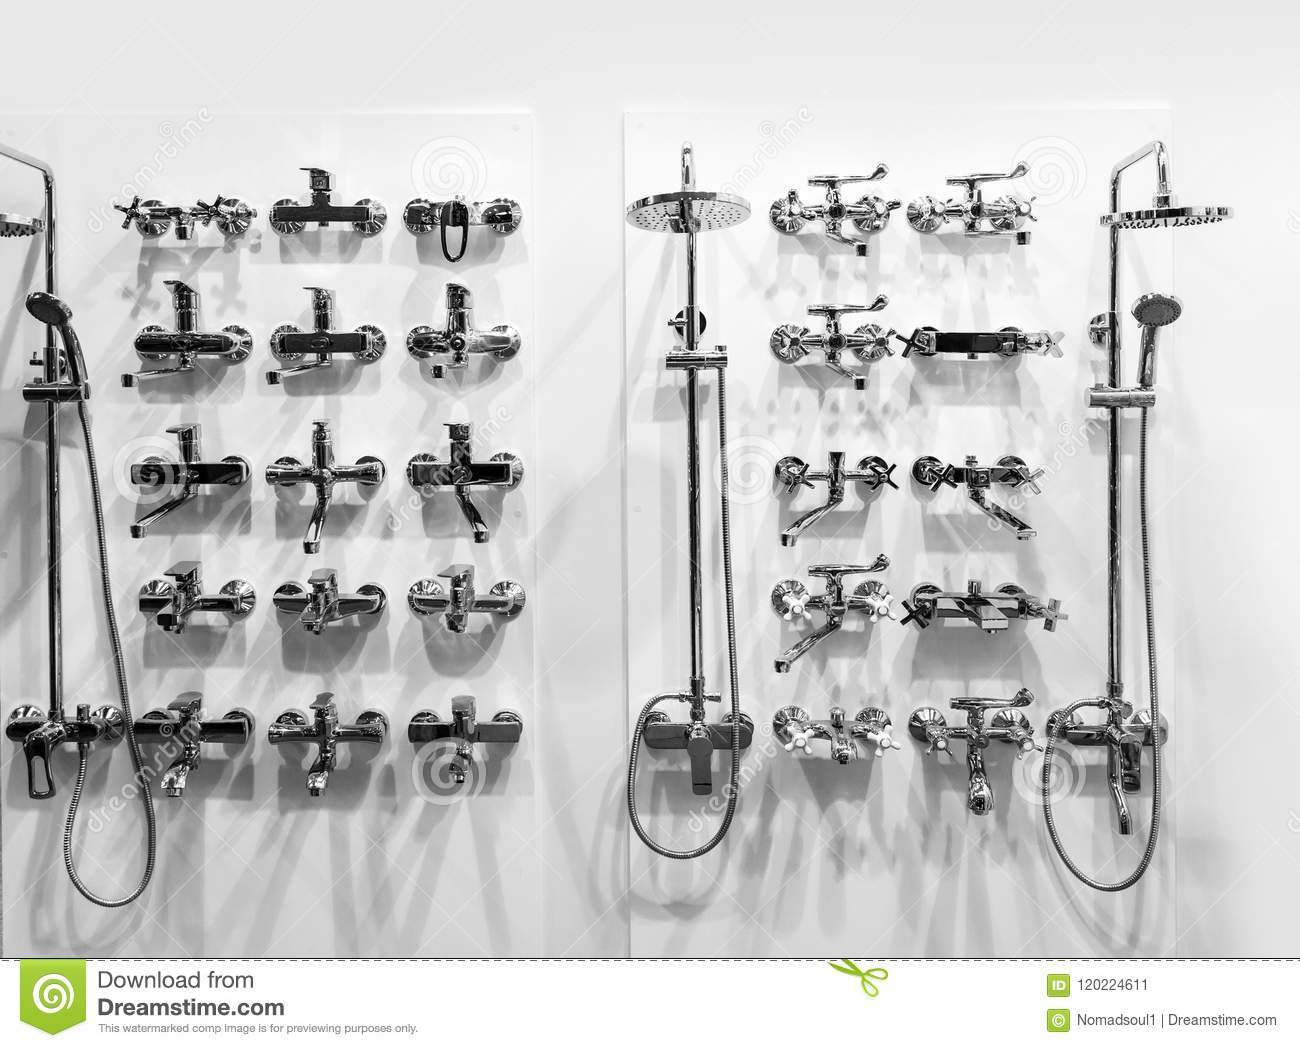 Chrome Showers And Faucets In Plumbing Shop Stock Image - Image of ...